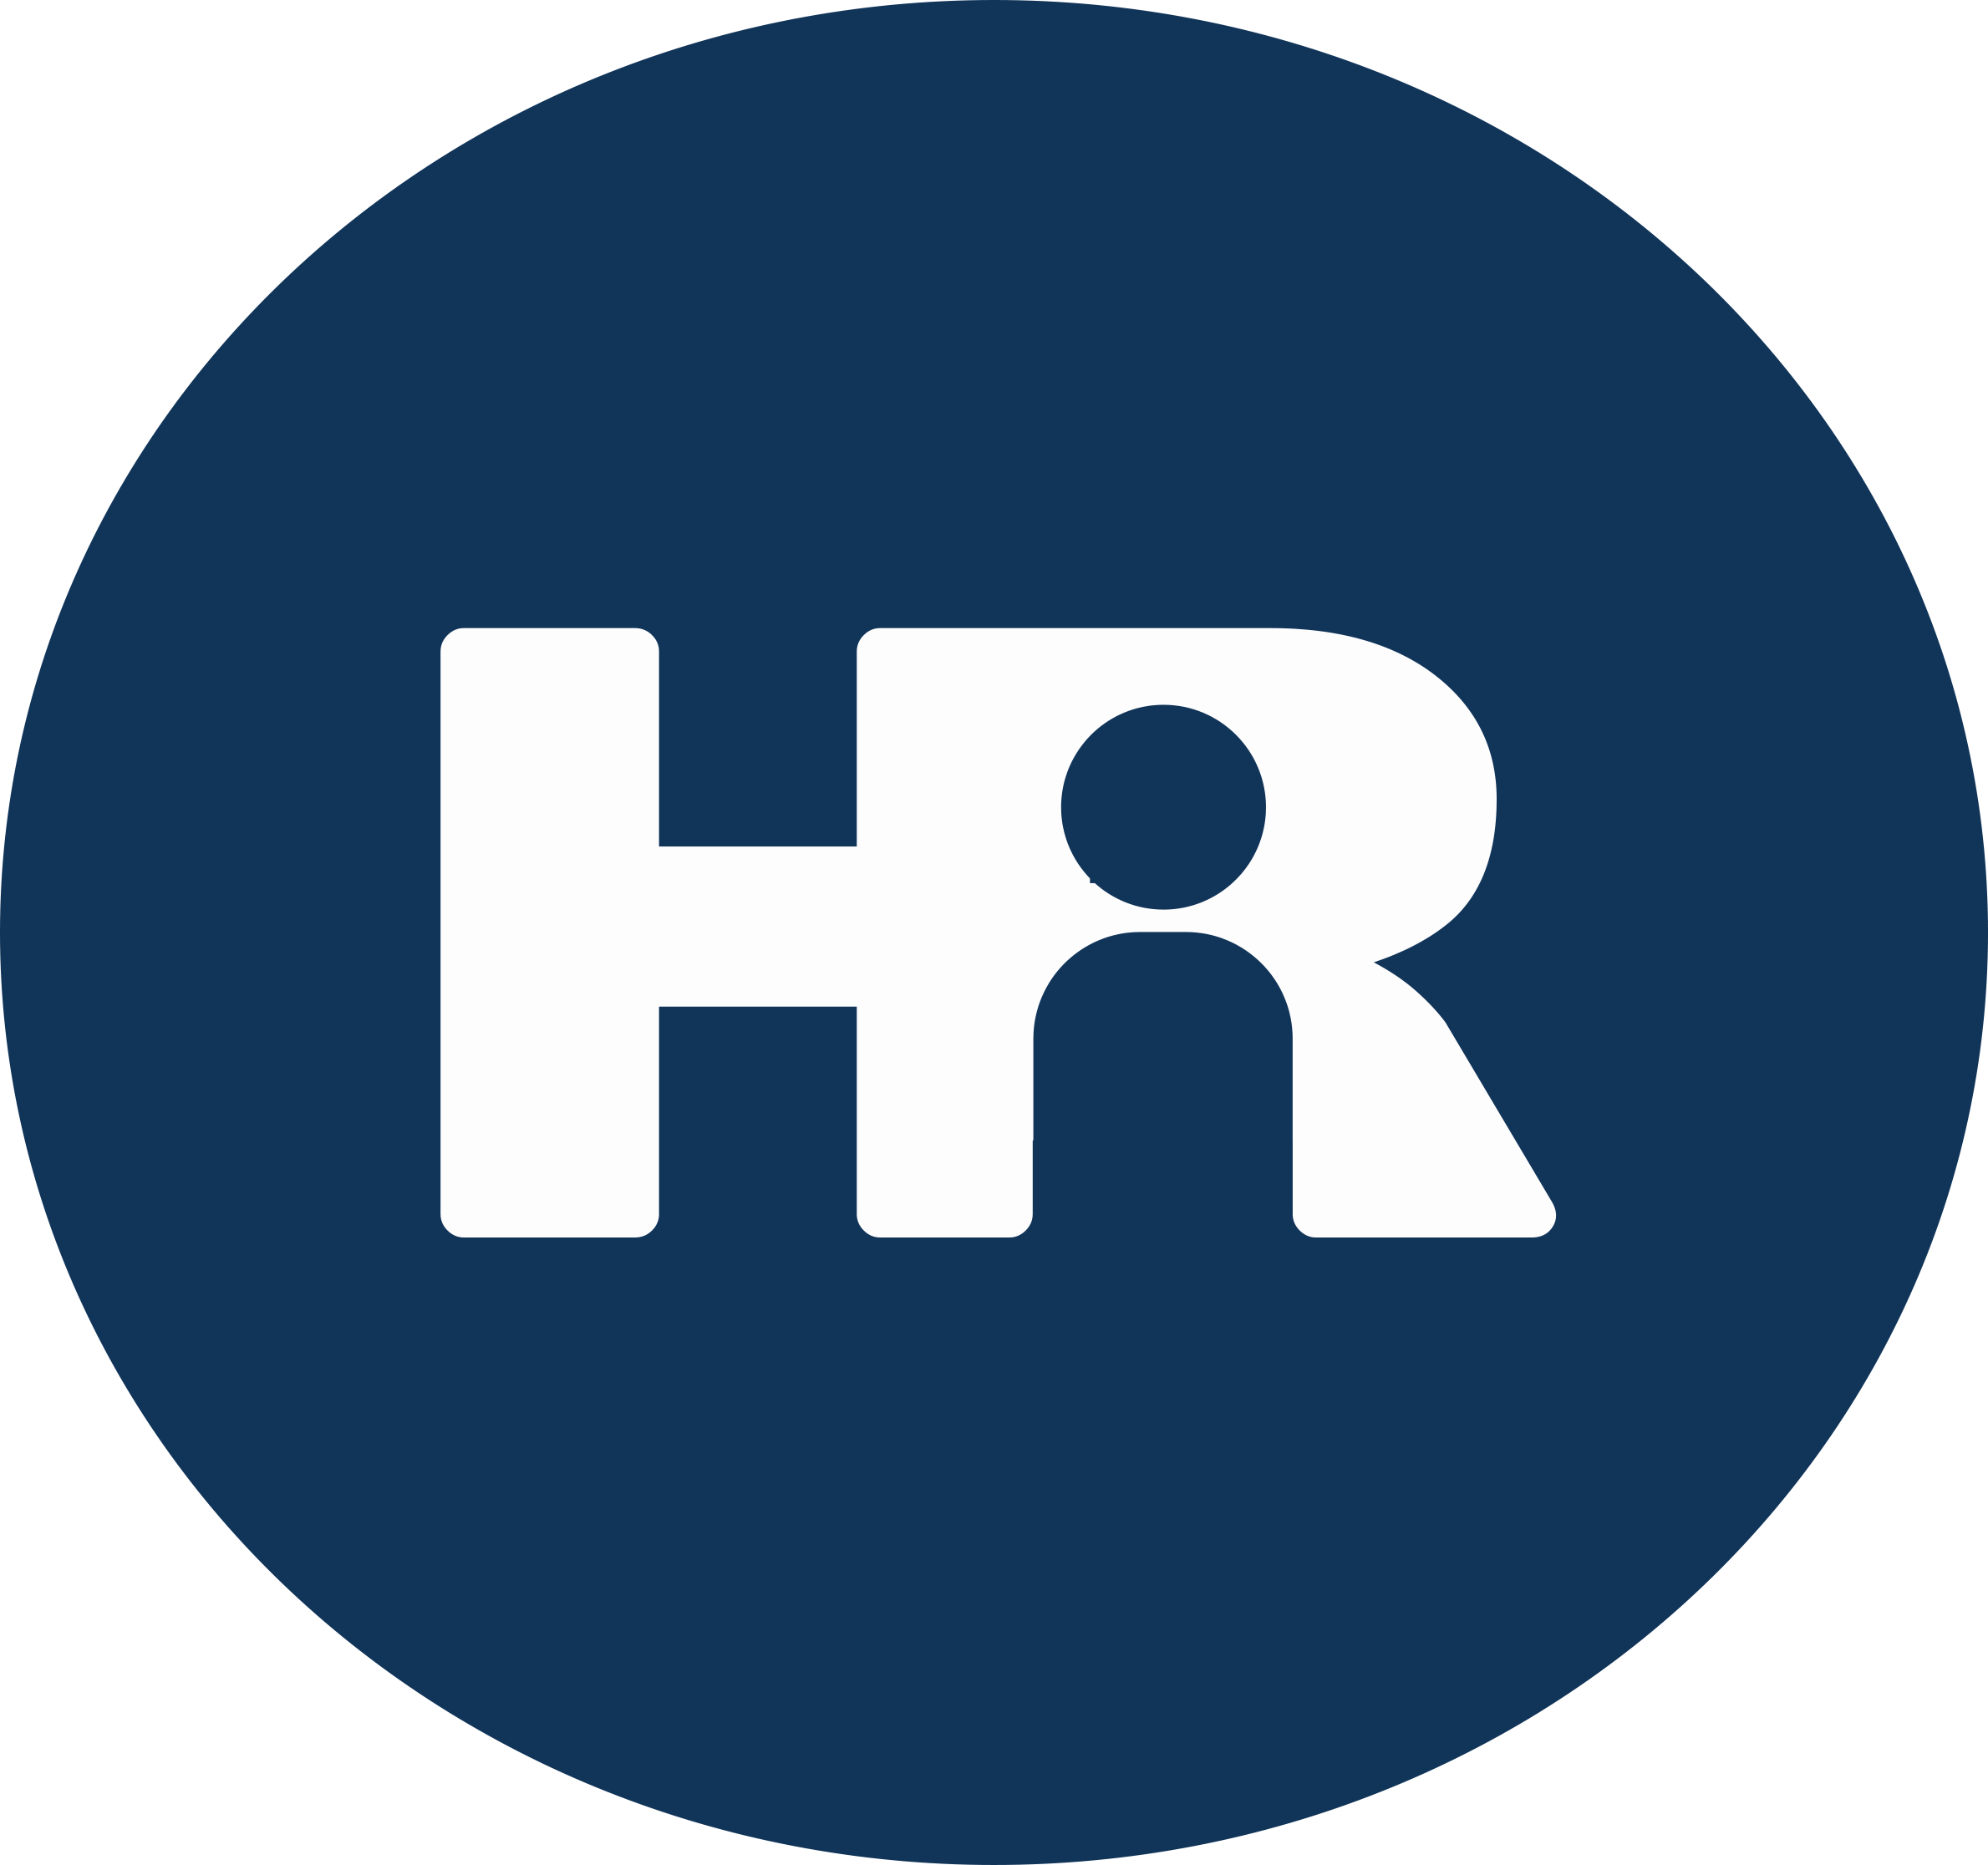 HD Human Resources Logo Png.